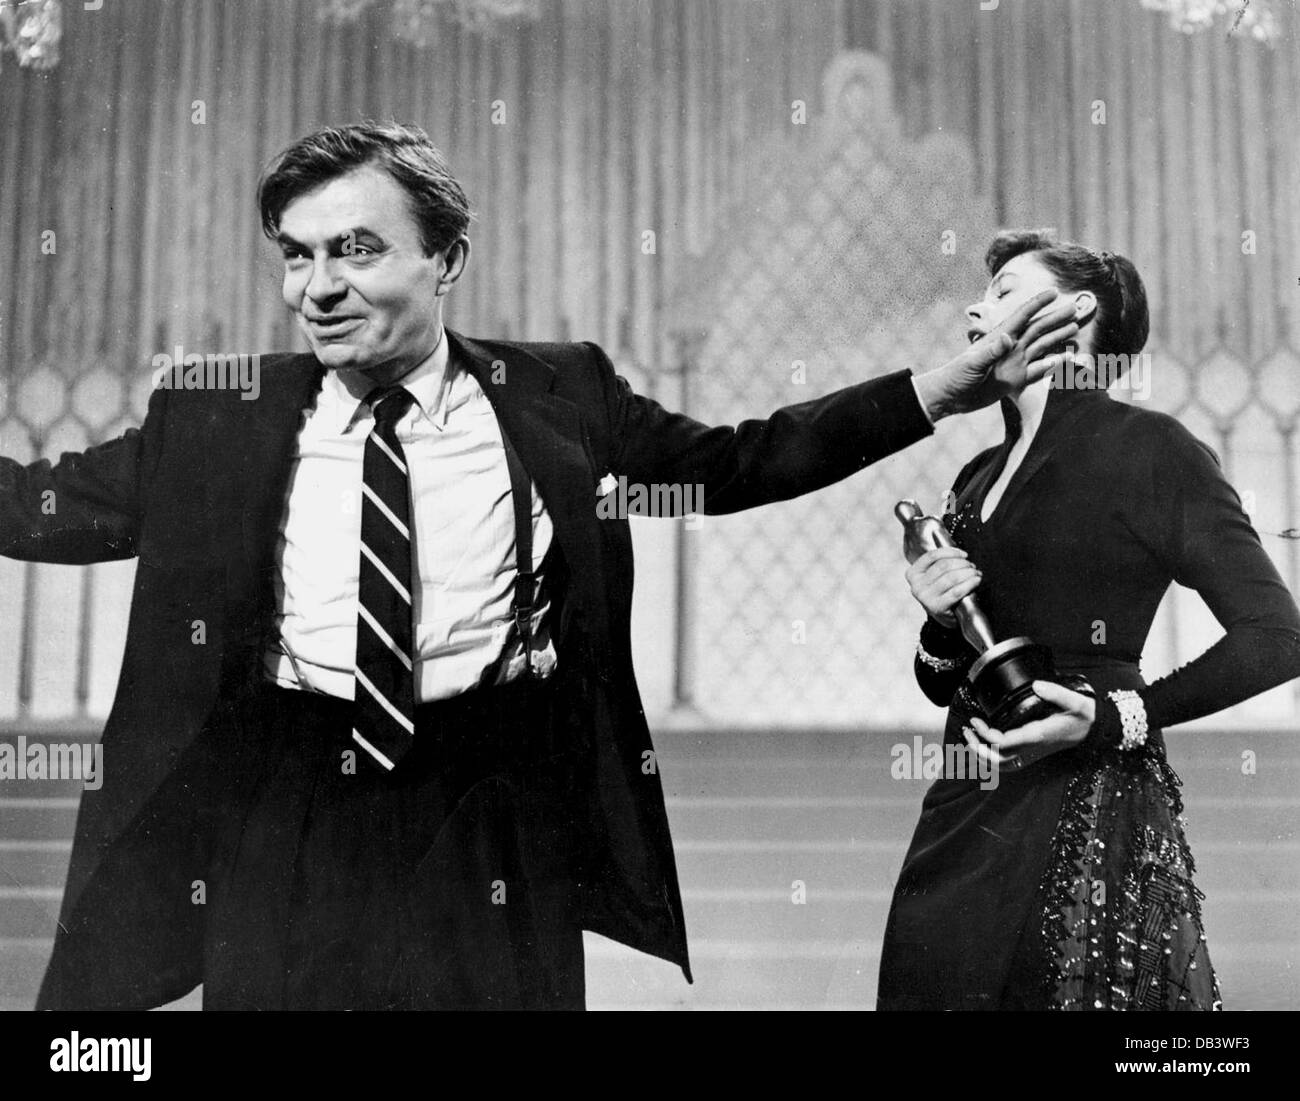 A Star Is Born Warner Bros 1954 Directed By George Cukor With Stock Photo Alamy